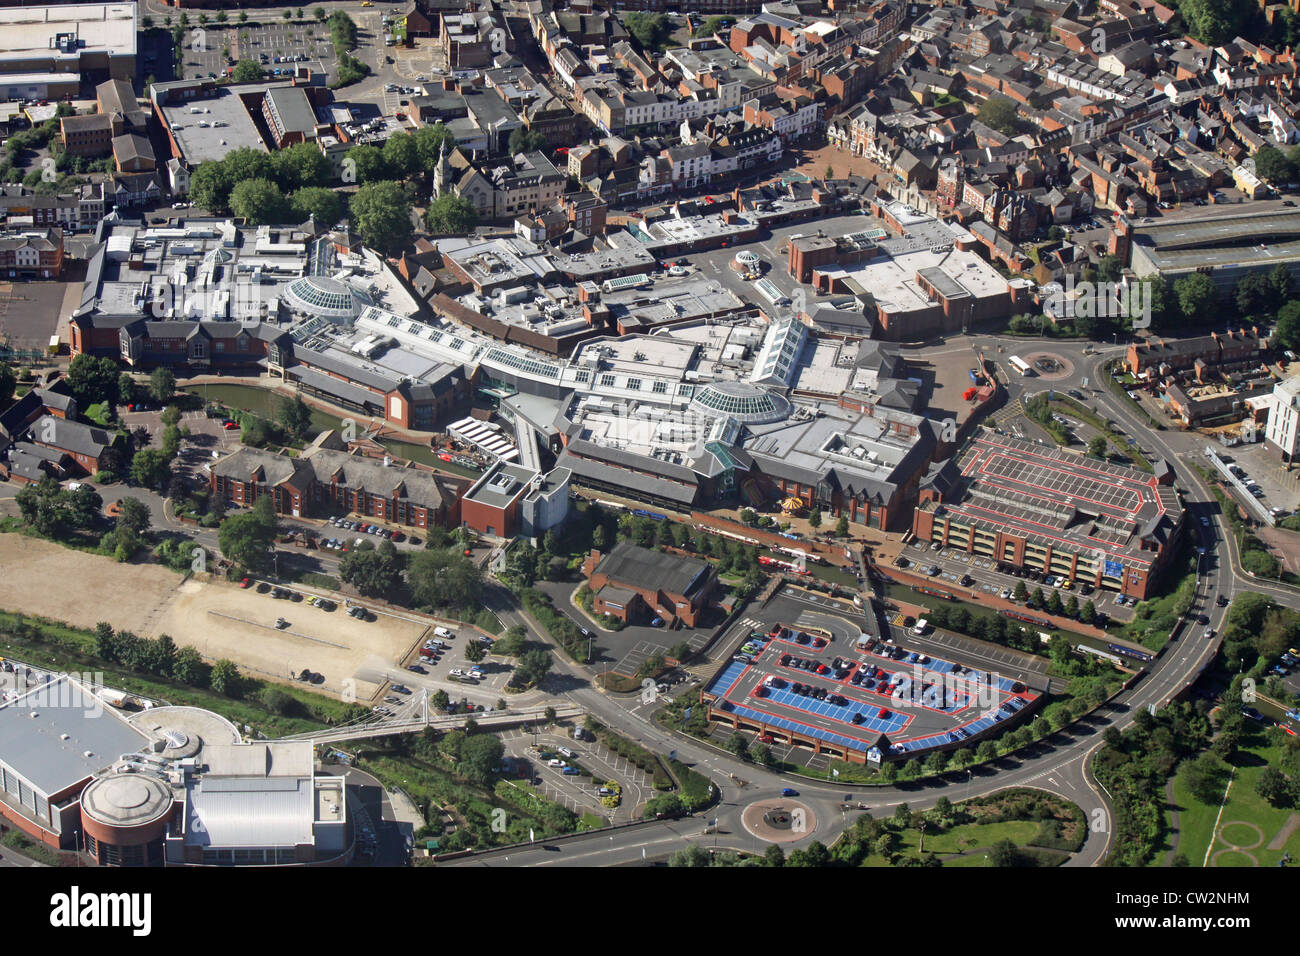 aerial view of Banbury Castle Quay Shopping Centre, Oxfordshire - Stock Image